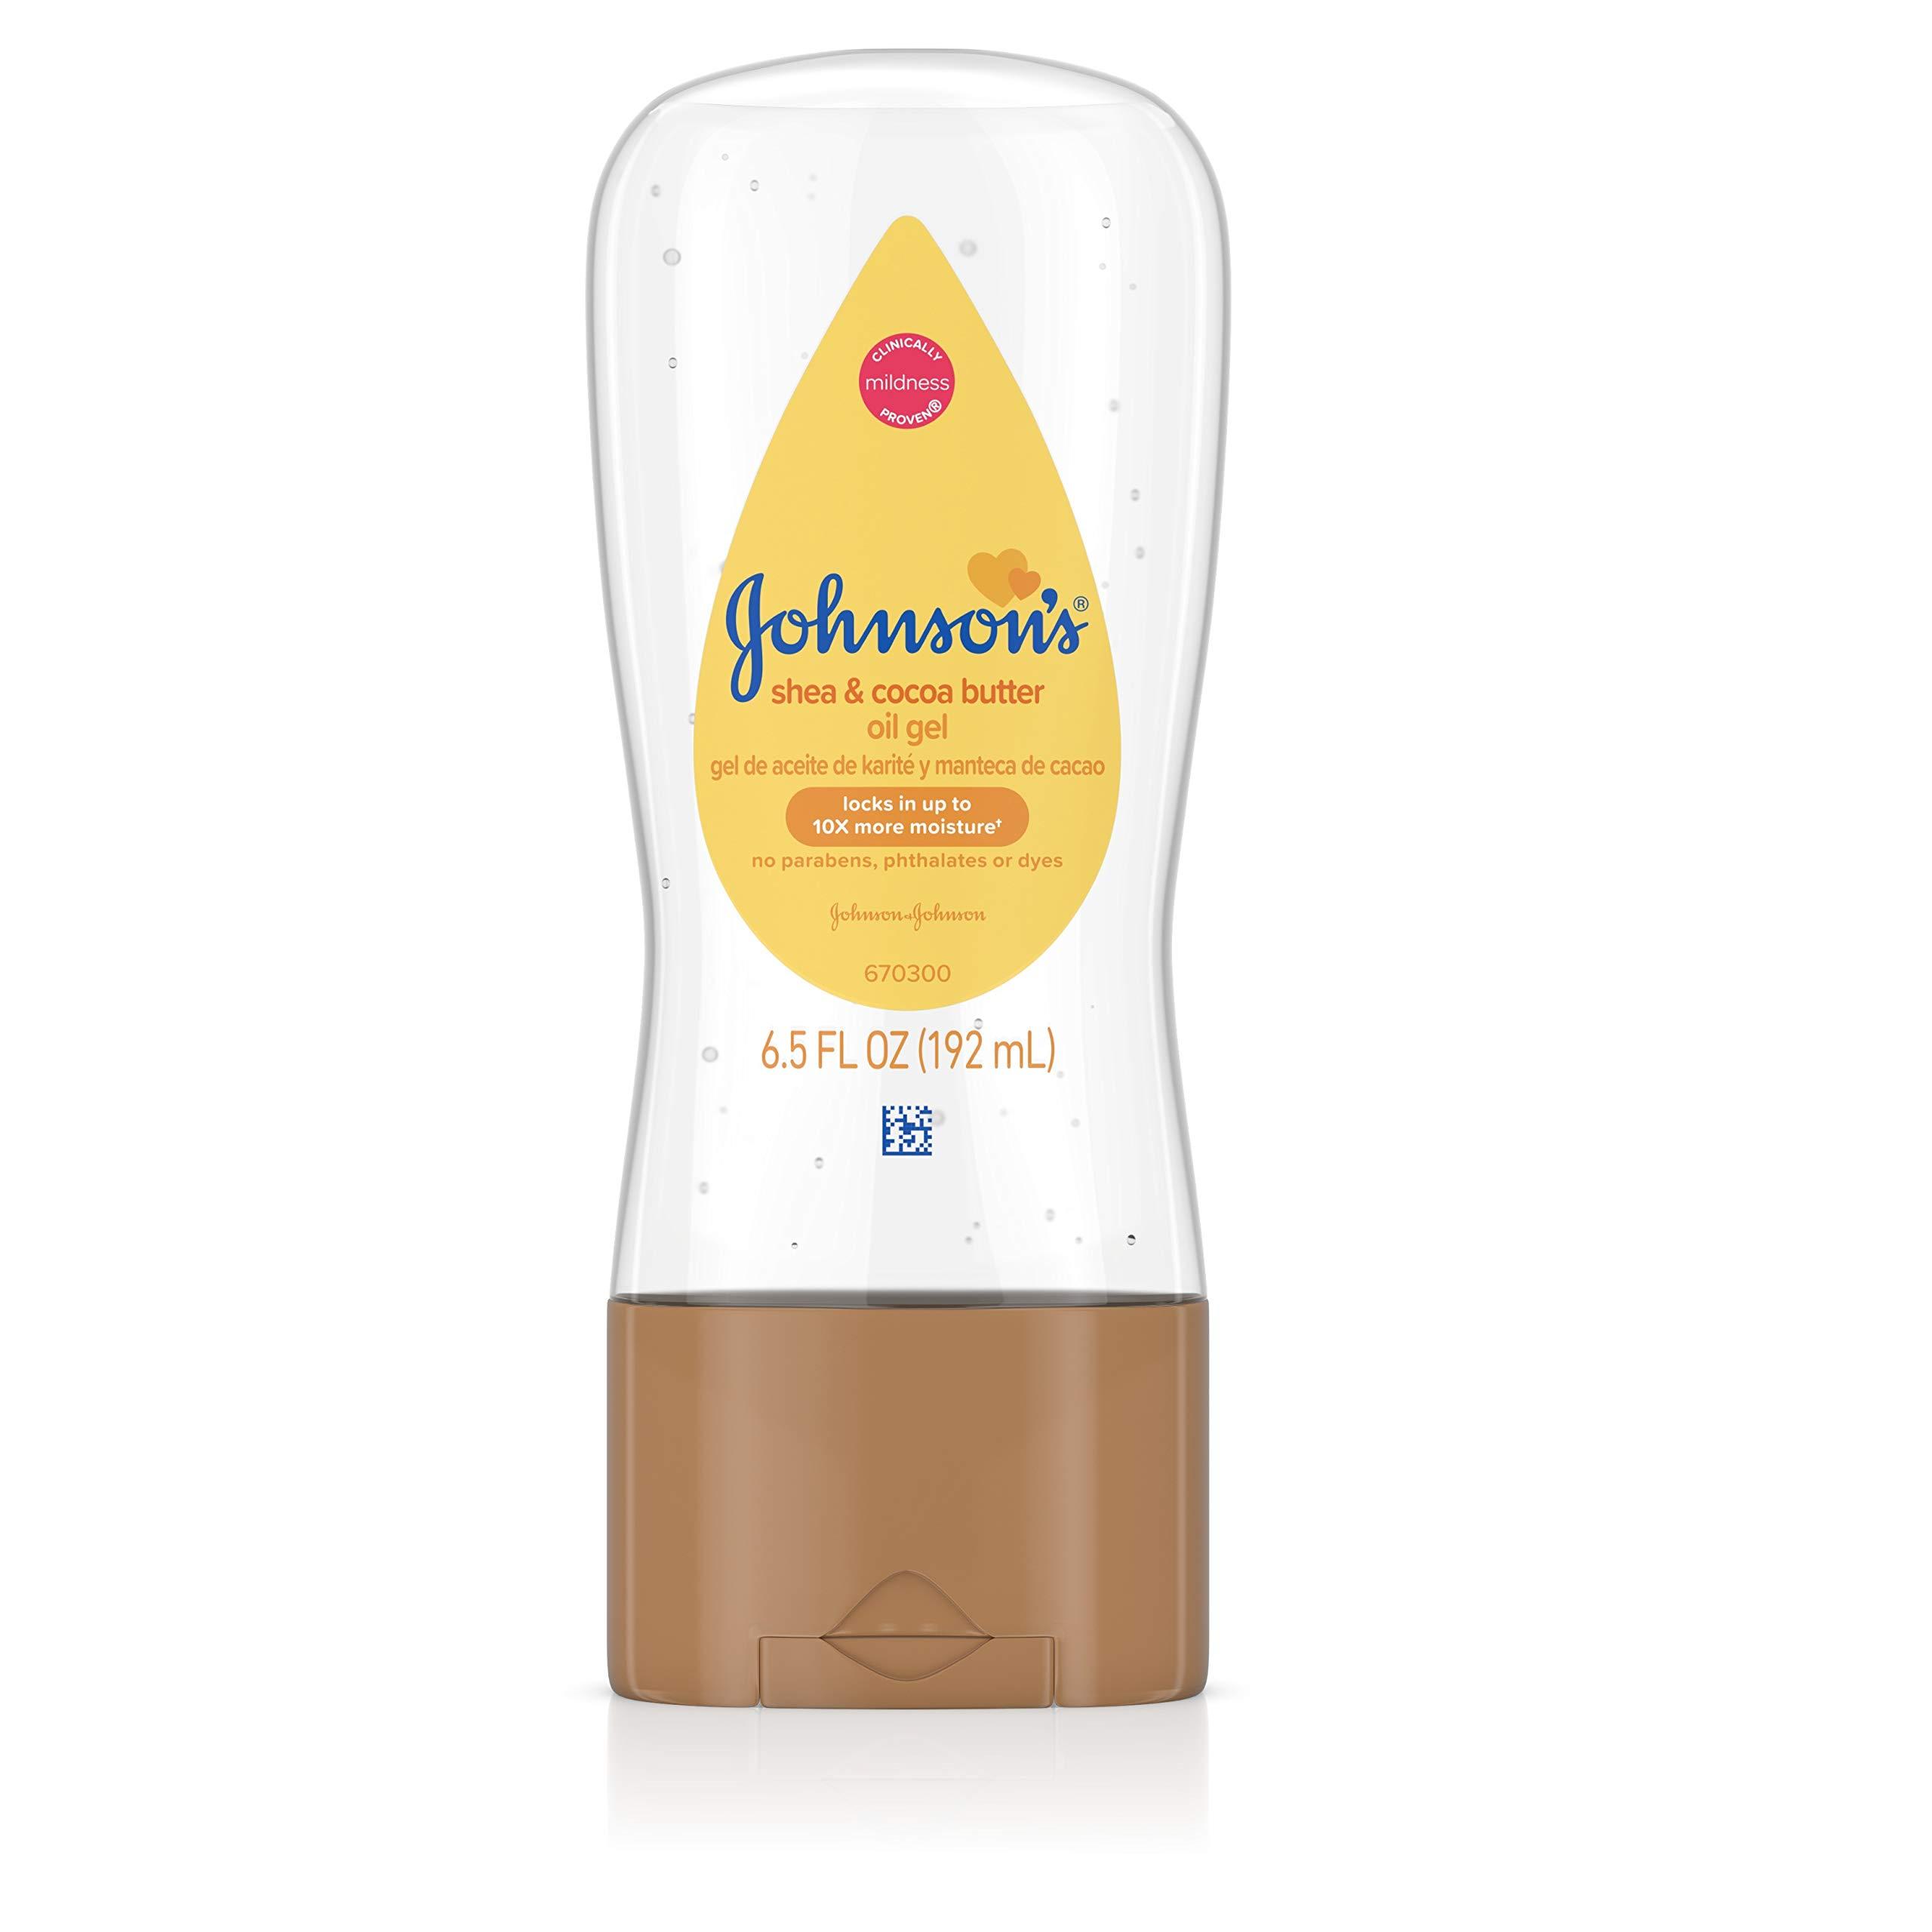 Johnson's Baby Oil Gel Enriched With Shea and Cocoa Butter, Great for Baby Massage, 6.5 fl. oz, Pack of 6 (Packaging May Vary)